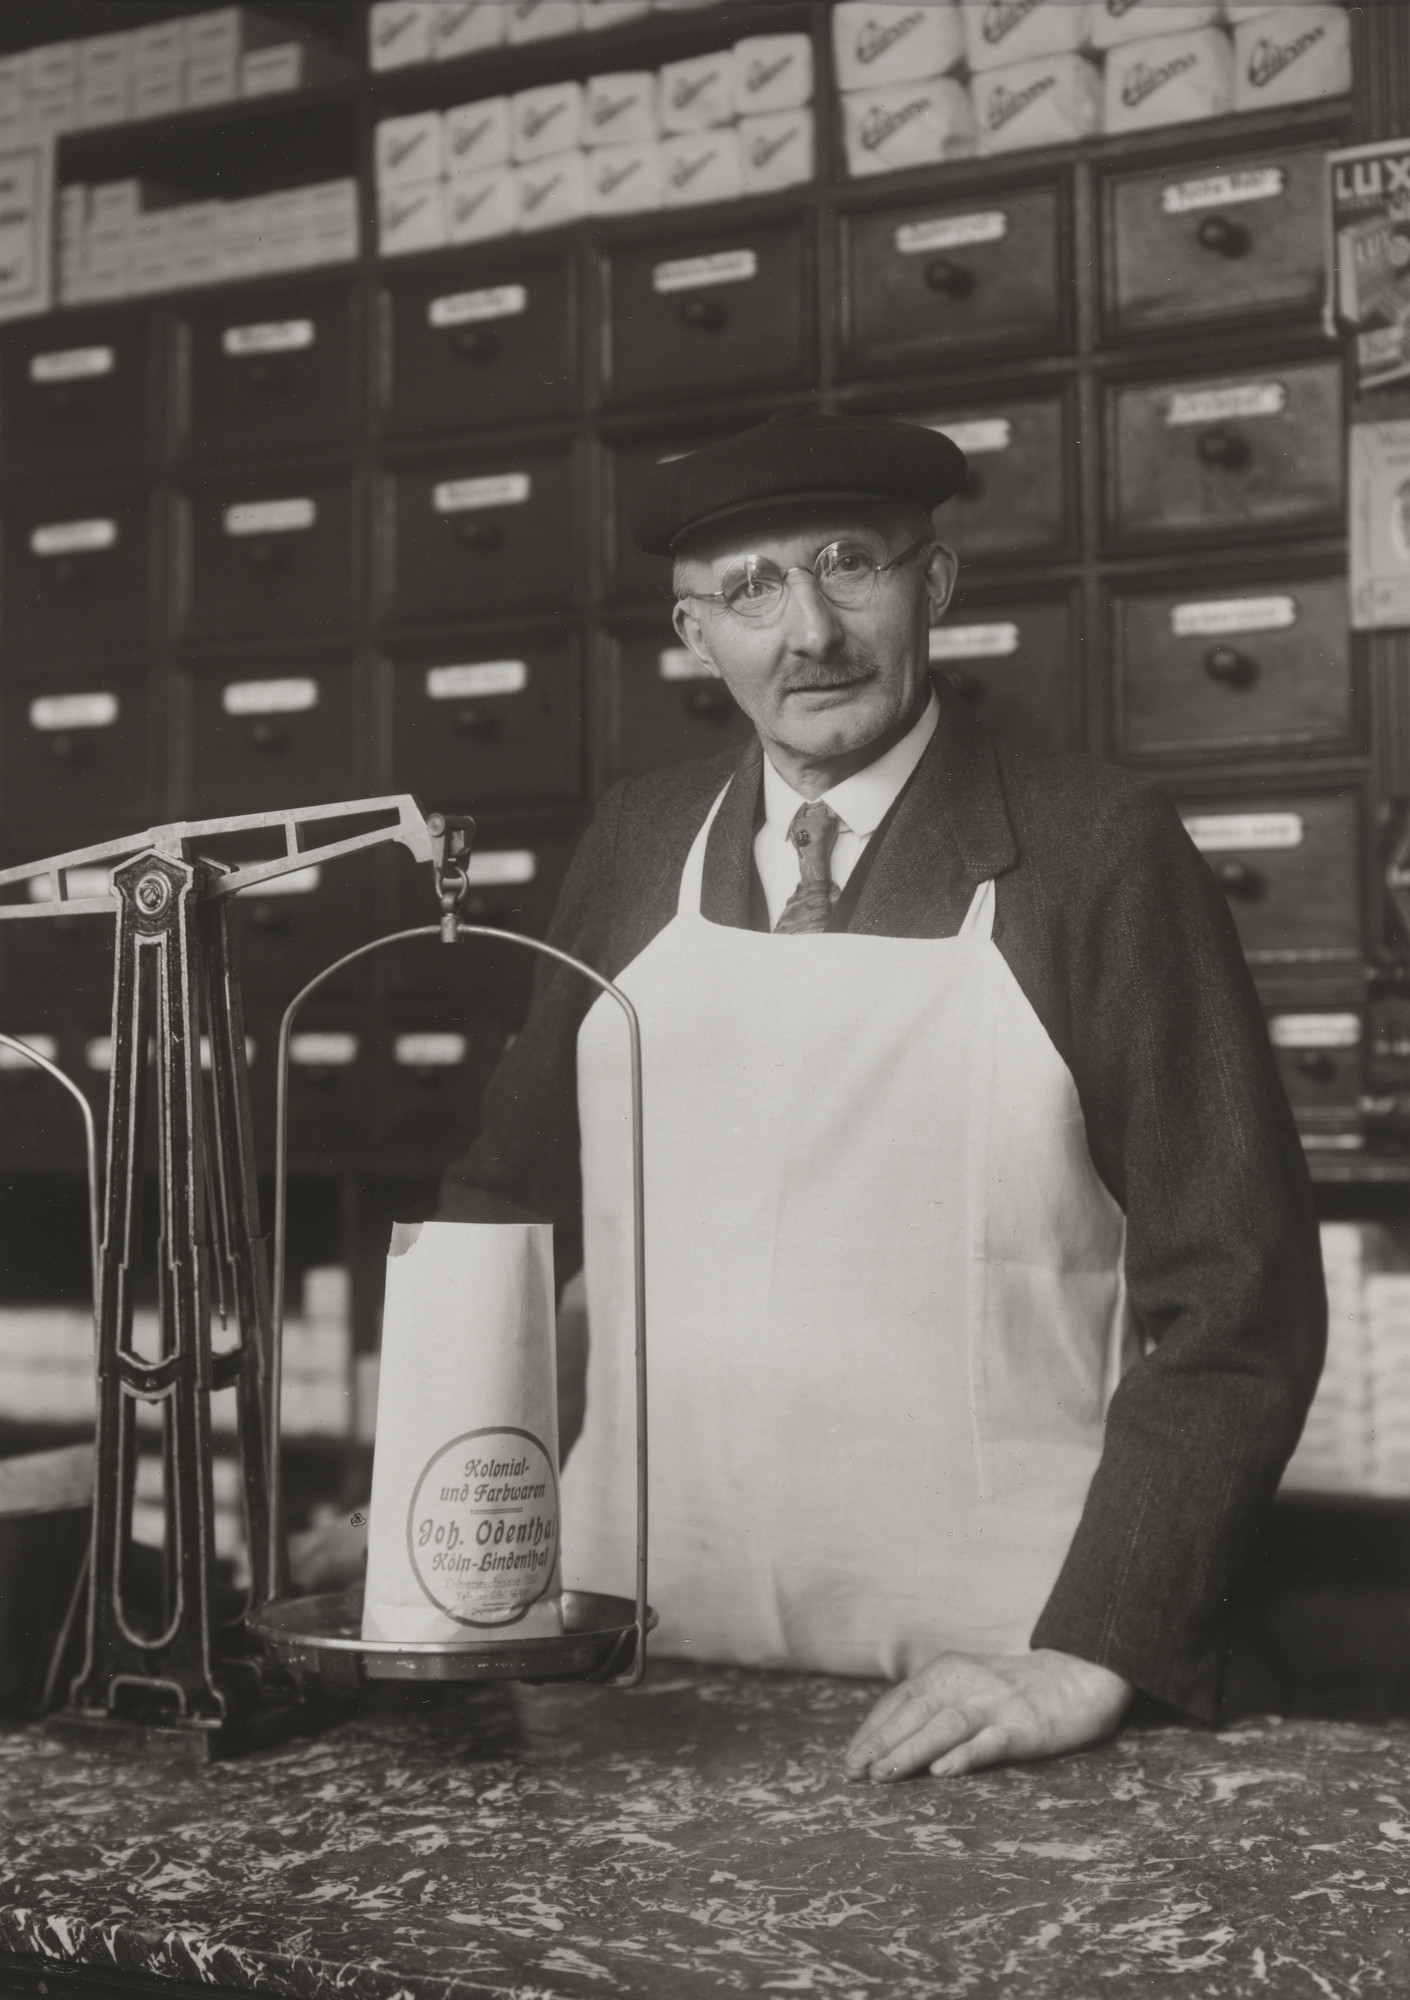 August Sander. Grocer and Hardware Dealer. c. 1929